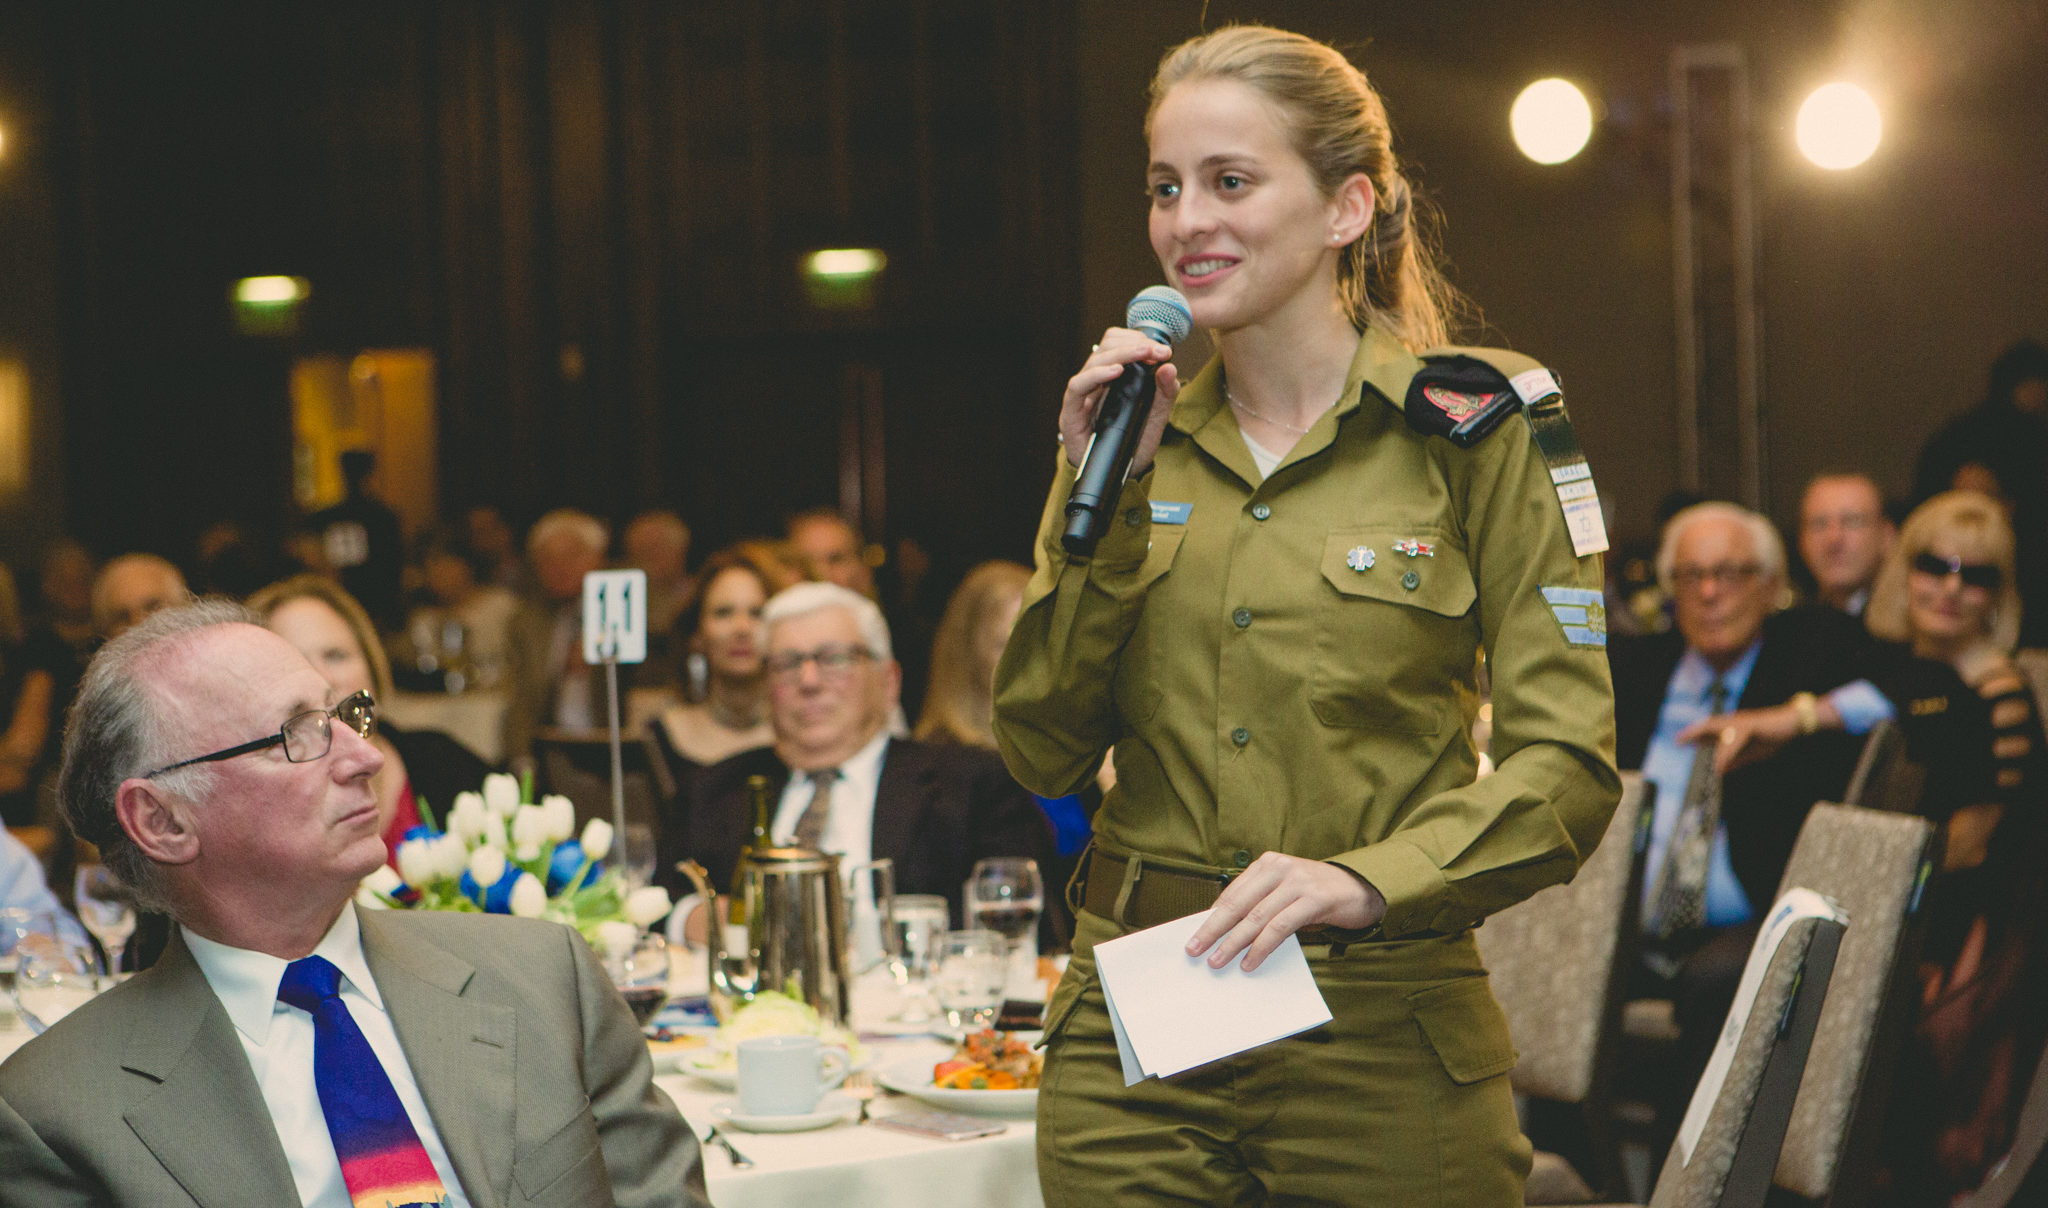 Shira Goetell, IDF paramedic, speaking at the FIDF dinner in S.F. about  helping wounded Syrians on the Golan border. (Photo/Courtesy FIDF)